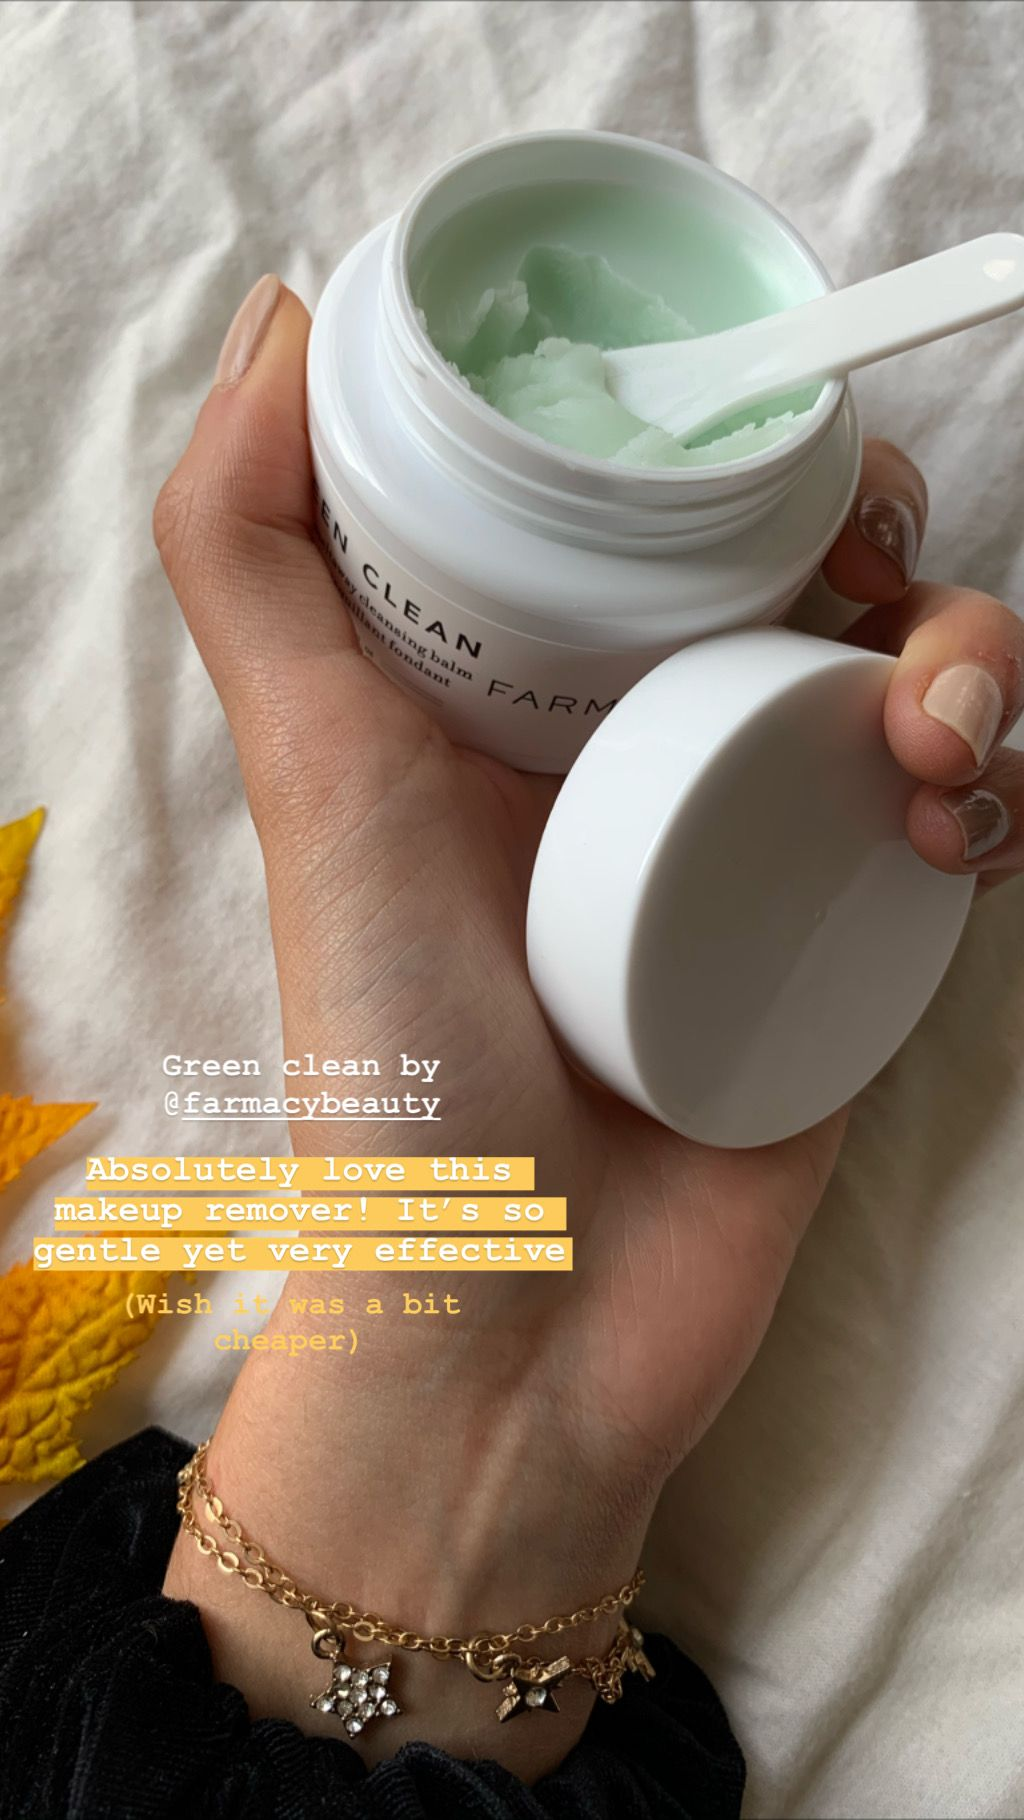 REVIEW // Green Clean Makeup Removing Cleansing Balm by